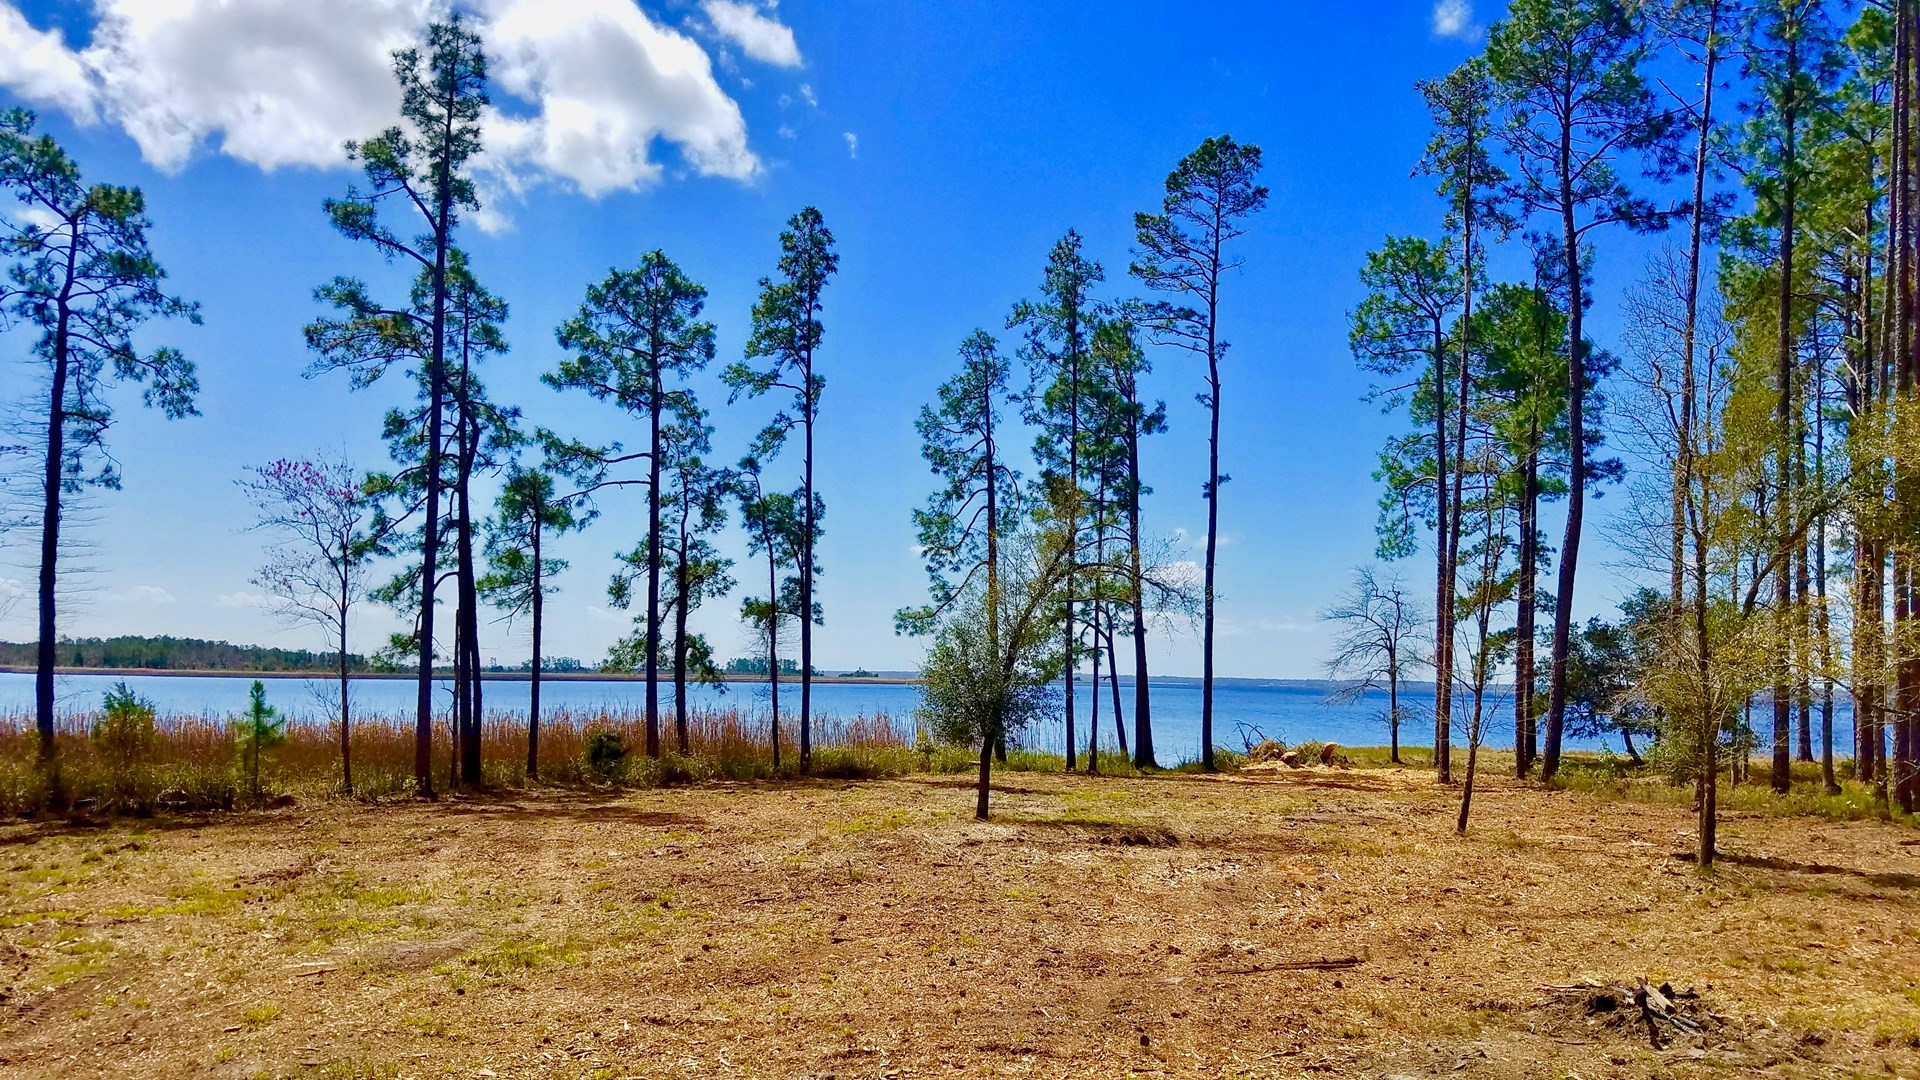 Riverfront property for sale in New Bern, NC